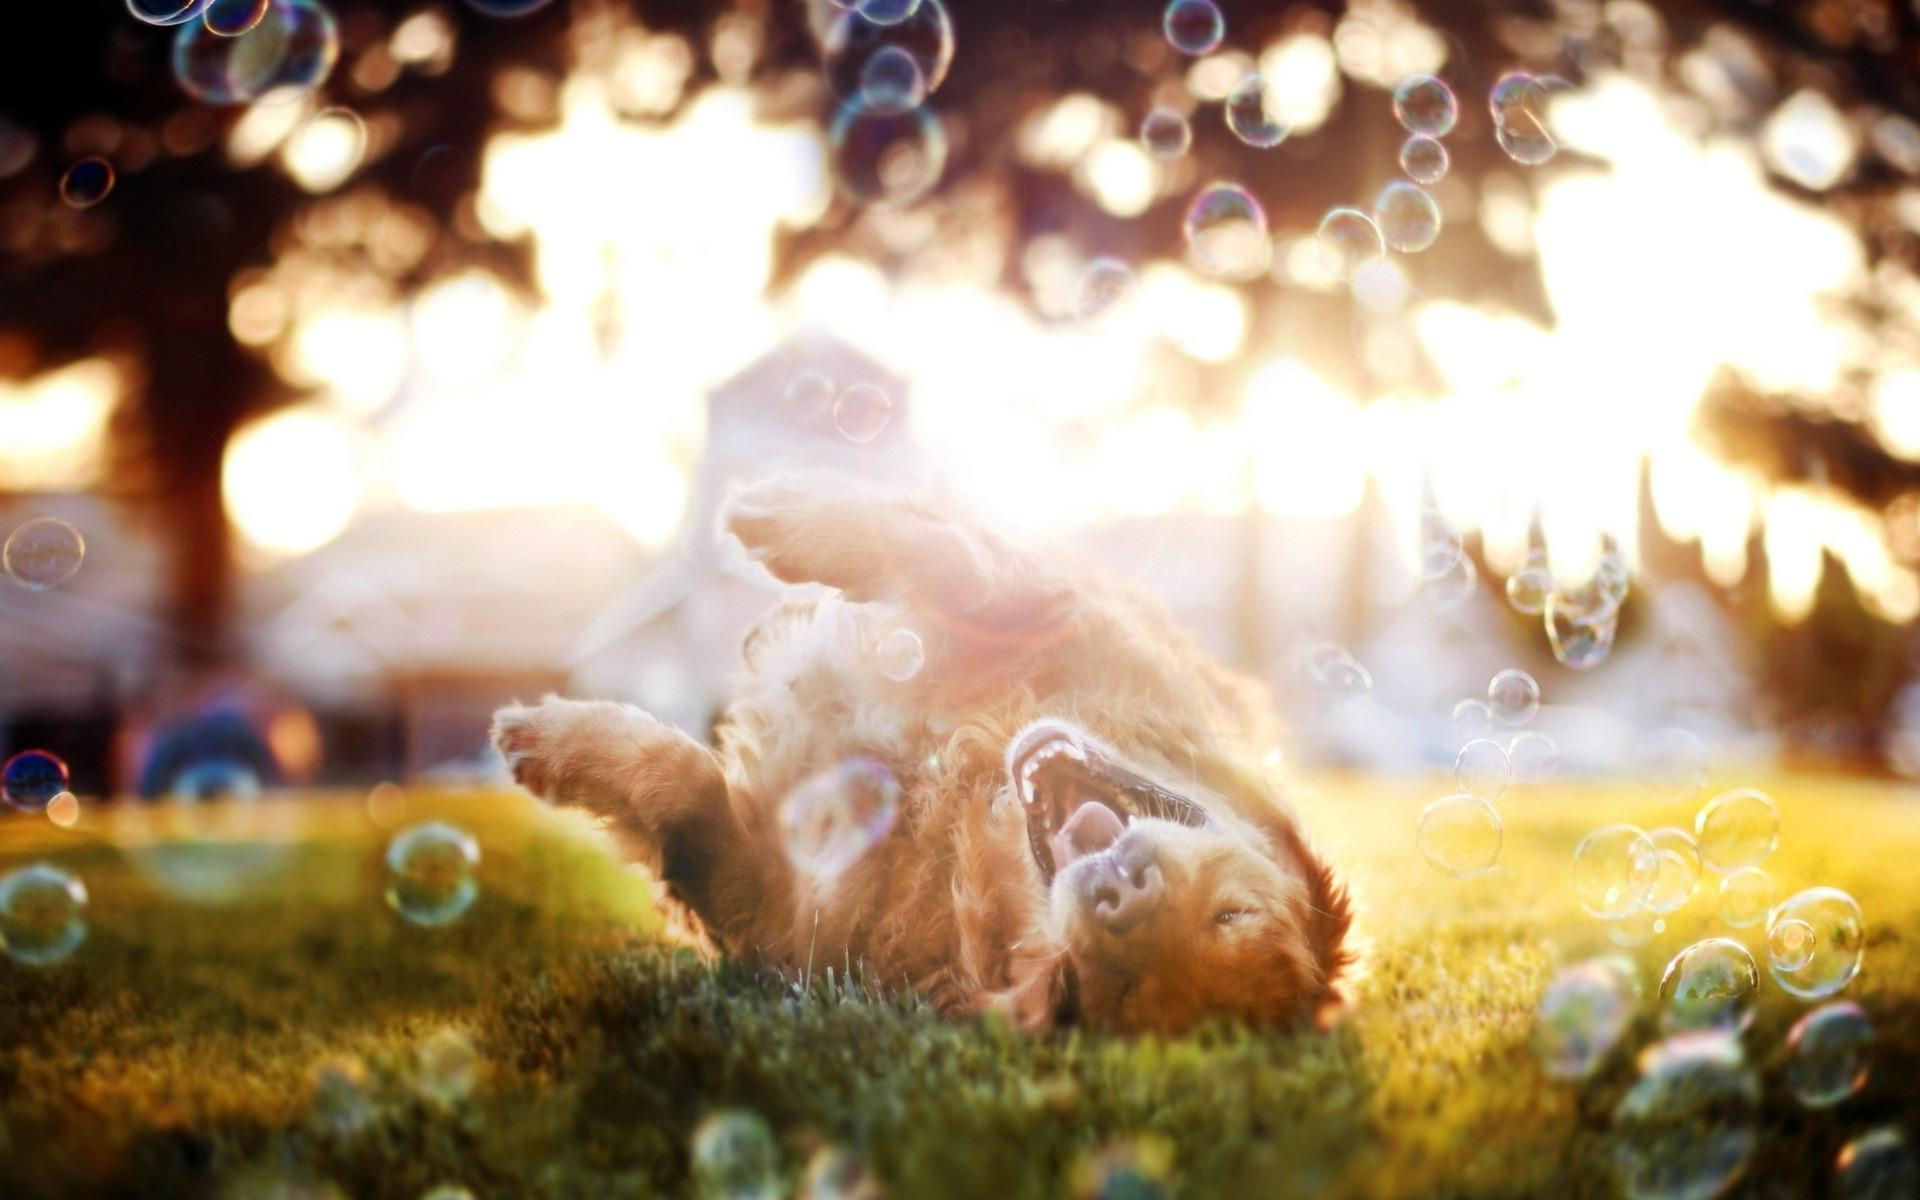 dog_bubbles_playful_sunshine_hd-wallpaper-86856